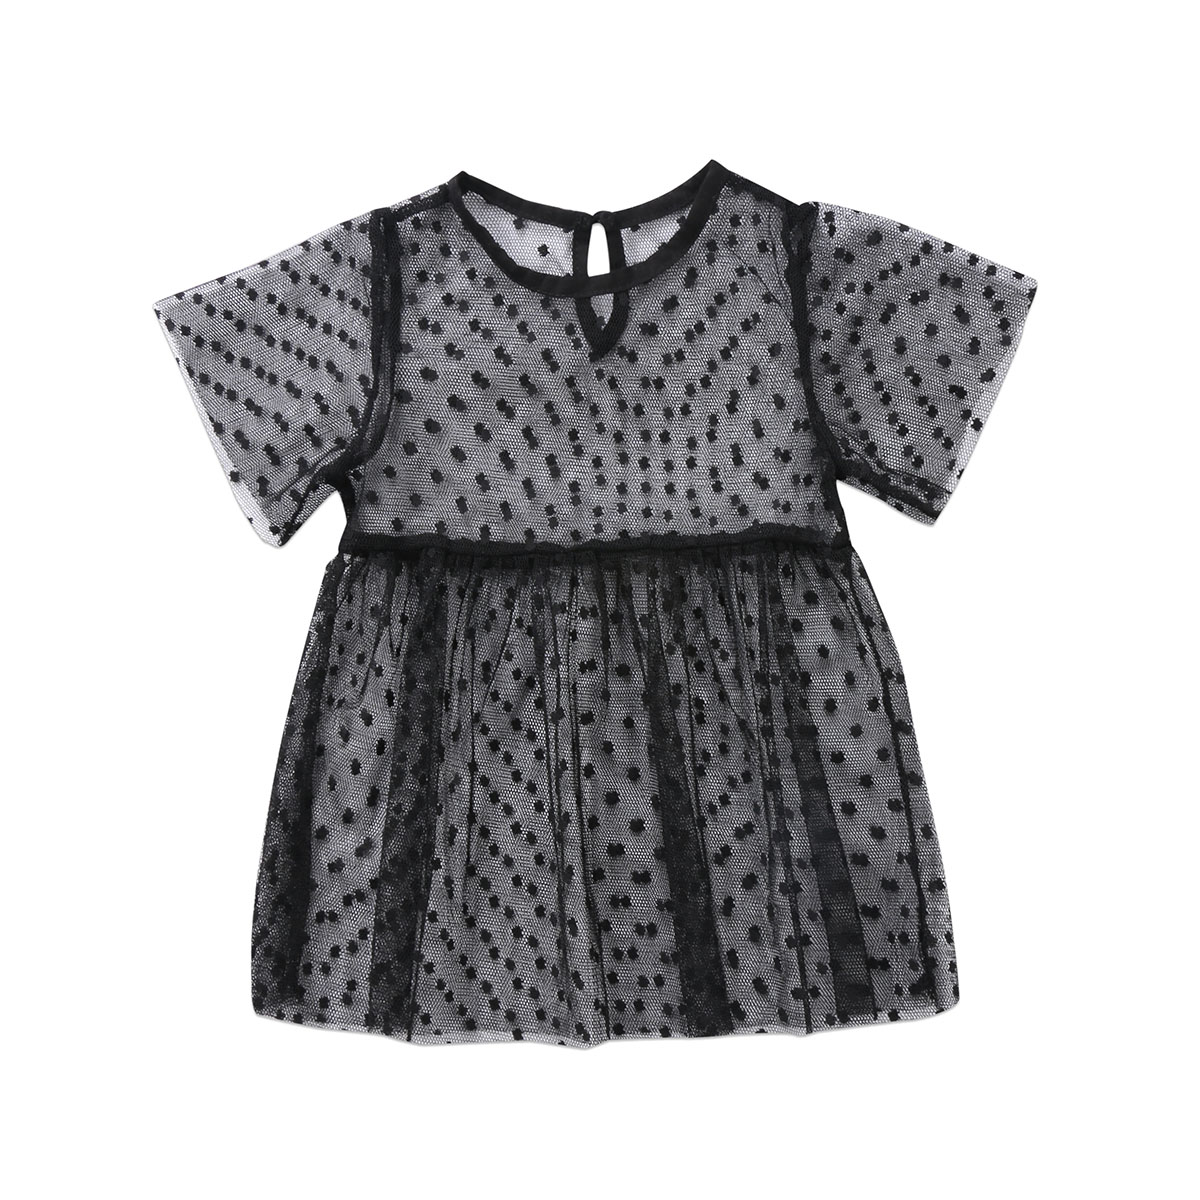 Hot Fashion Toddler Kids Baby Girls Clothing Dresses Transparent Short Sleeve Tops Tulle Tutu Mini Dress Girls Outfits Clothes day dress